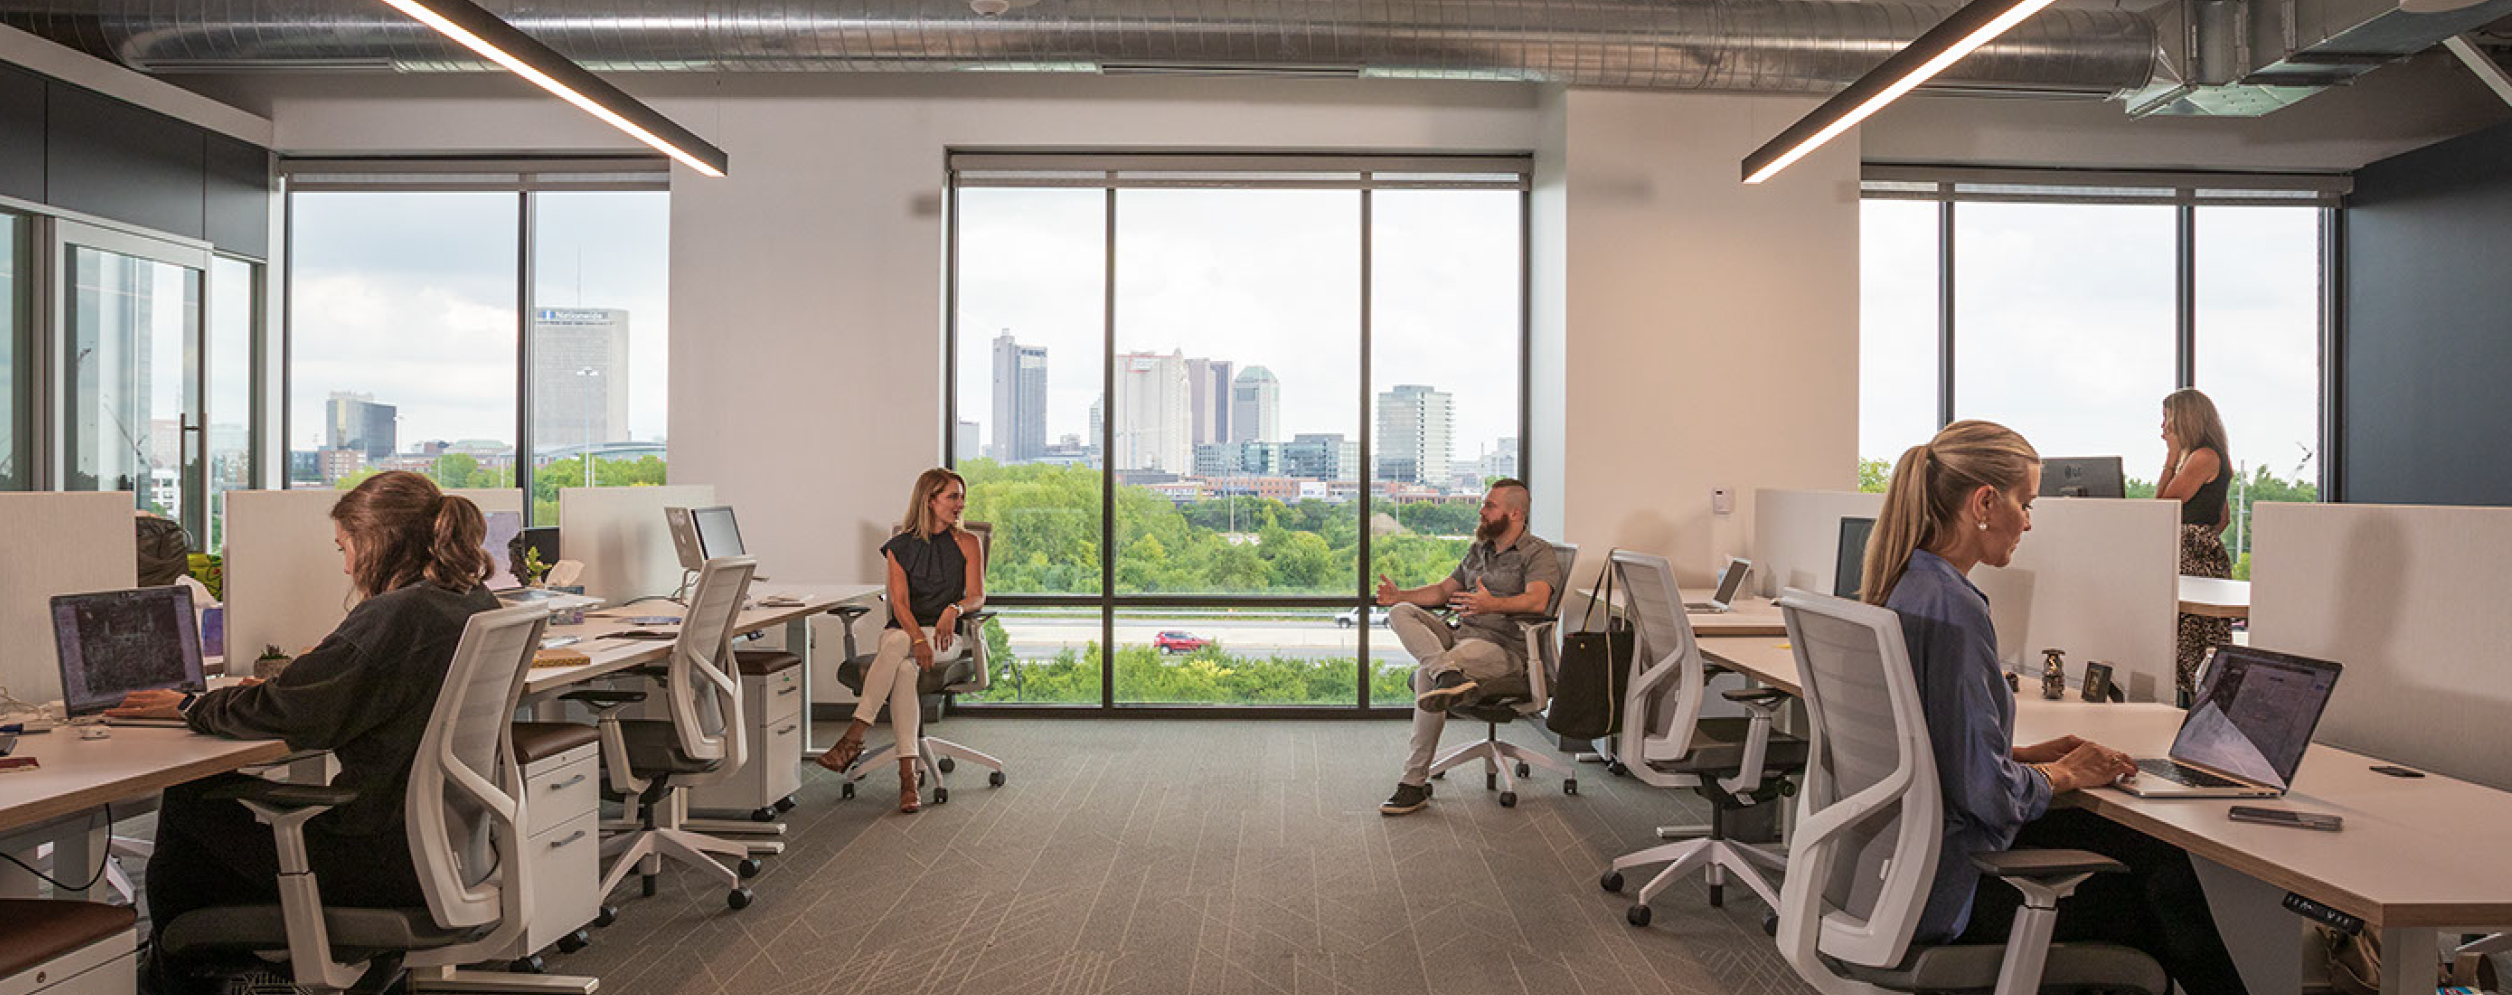 Upright team members working in the office overlooking downtown Columbus.